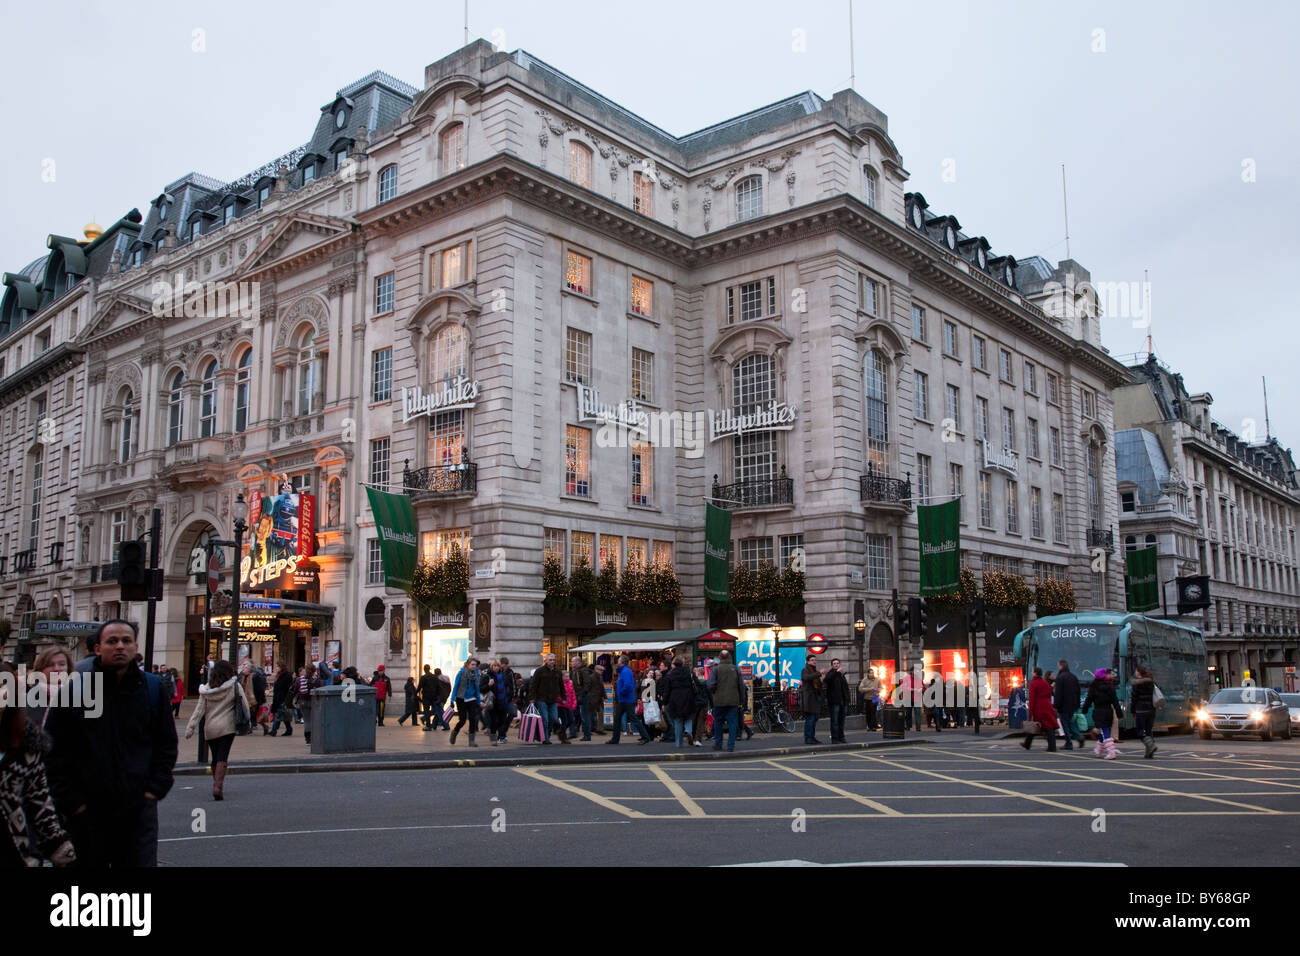 Lillywhites and the Criterion Theatre, Piccadilly, London, Uk - Stock Image